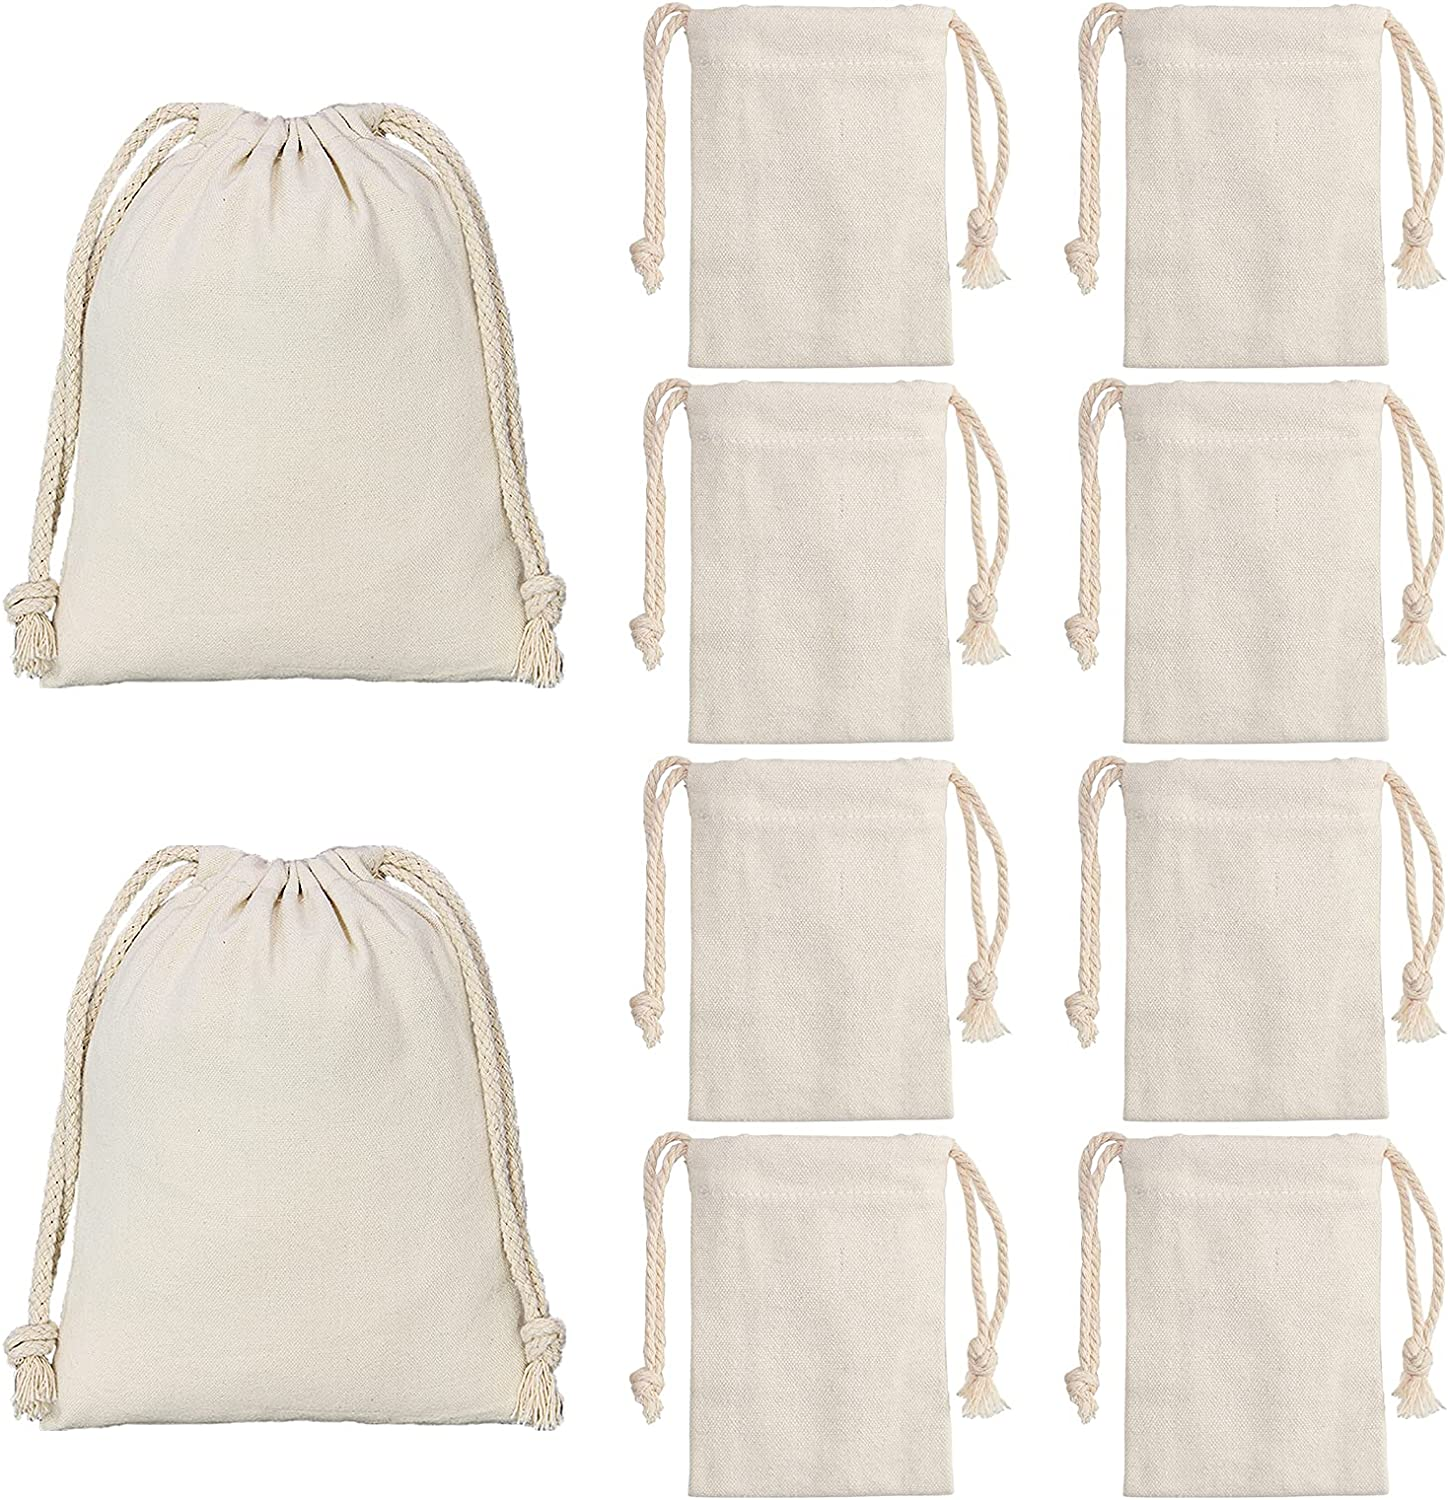 stallry Recommended 10pcs Dust Bag Cotton Breathable Ba Dustproof Sale Special Price Drawstring